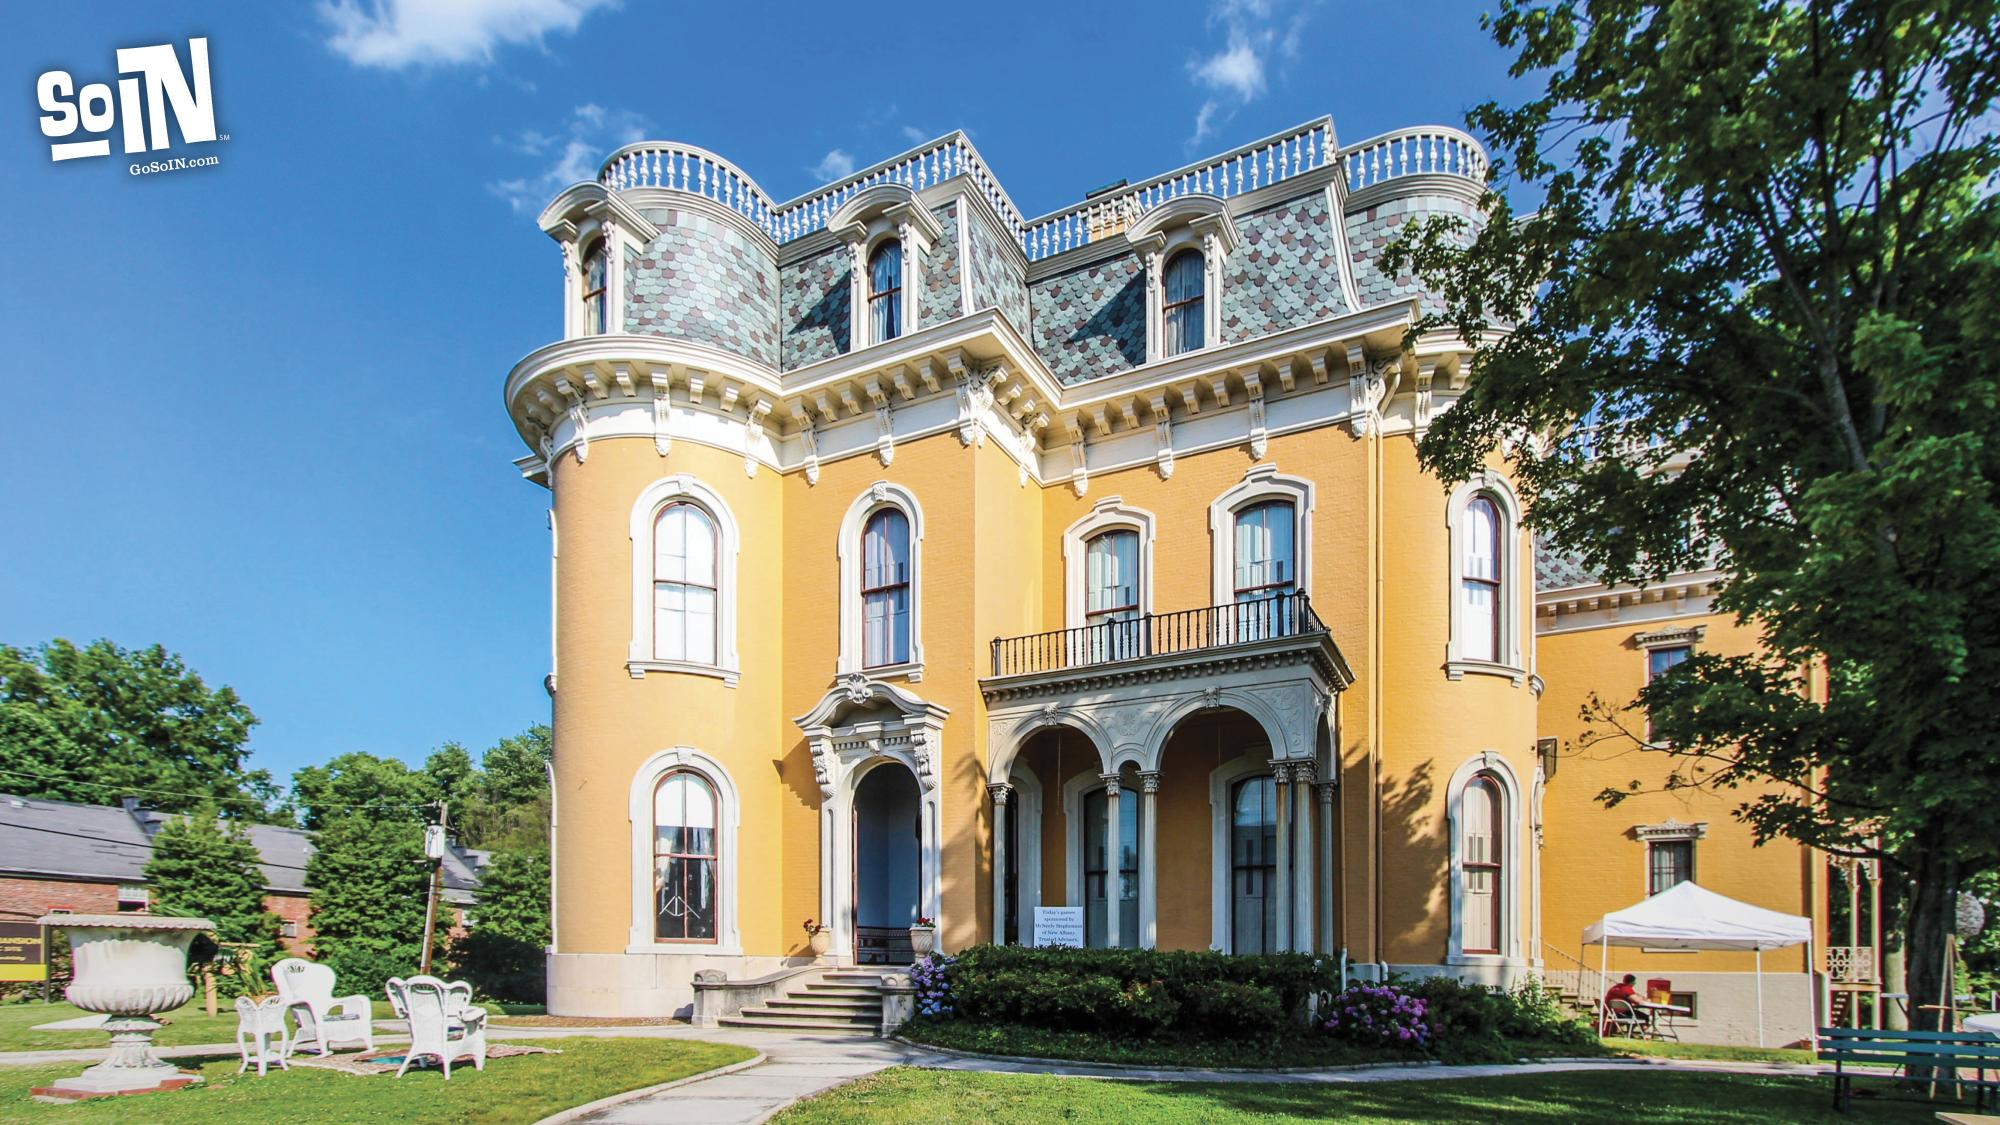 SoIN Virtual Background 7 - Culbertson Mansion